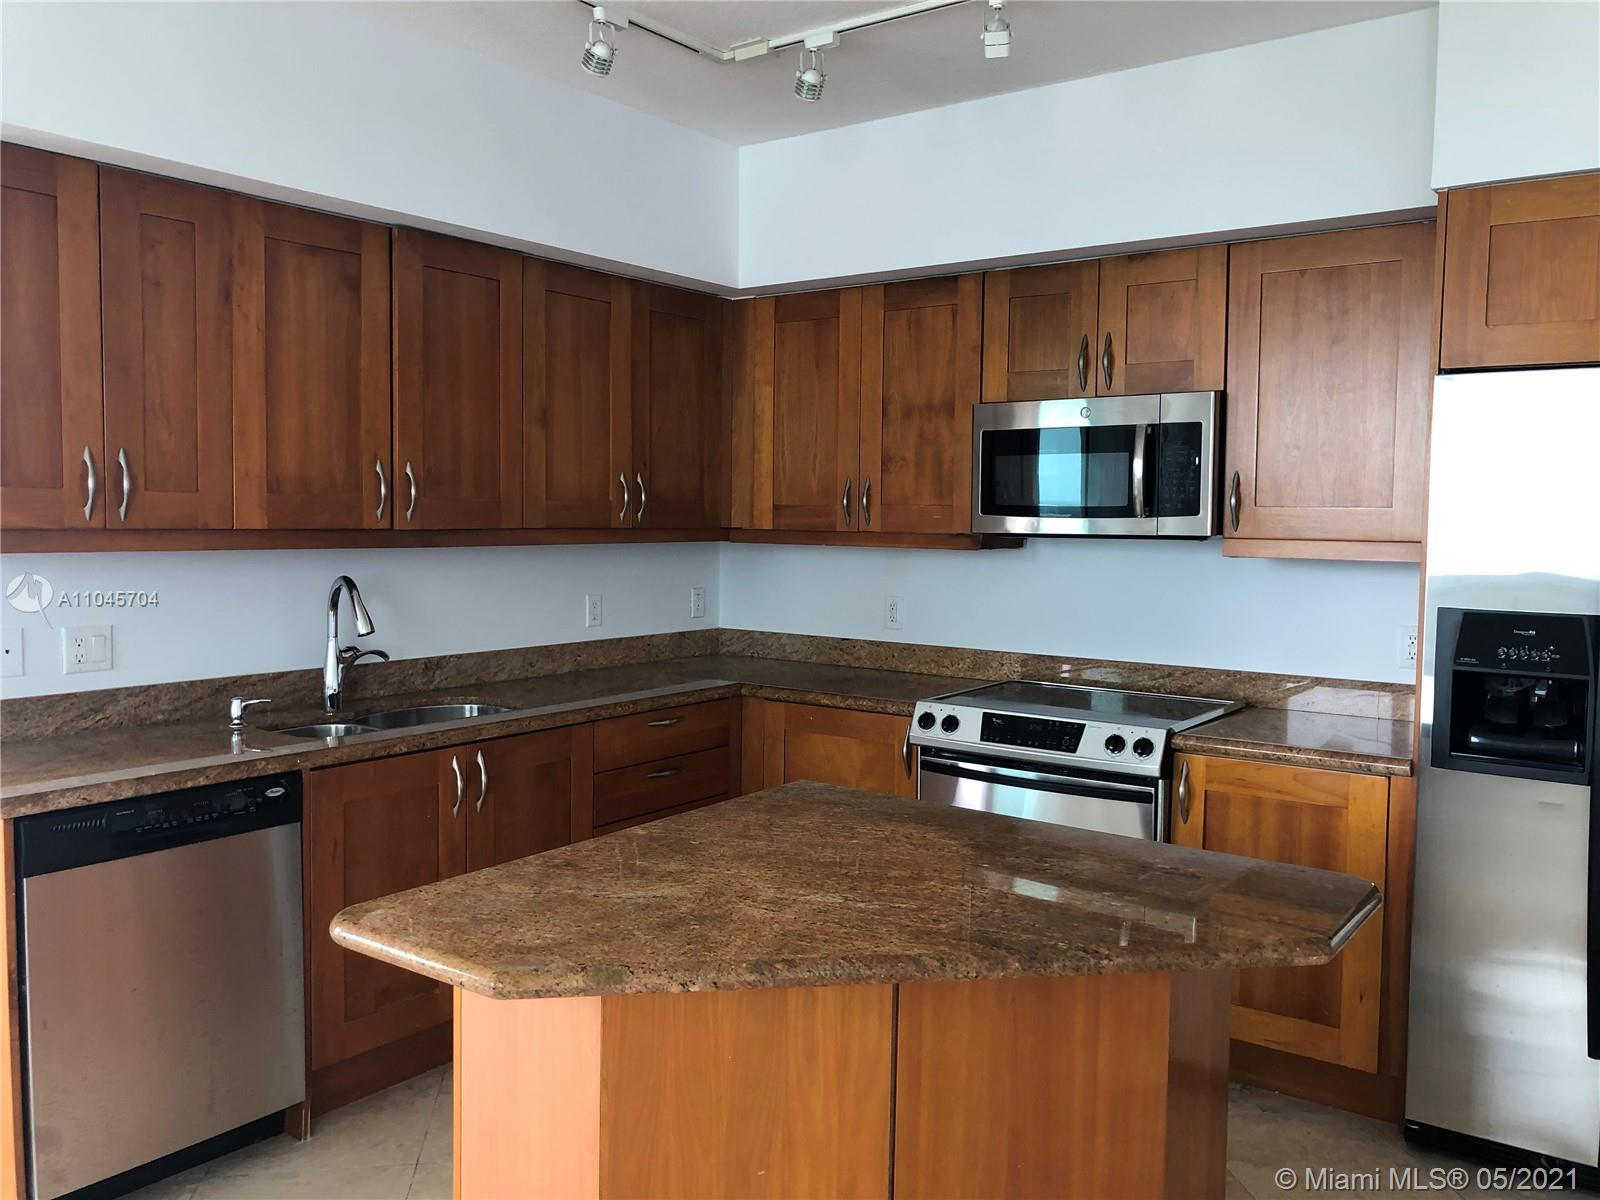 BEAUTIFUL 3 BEDROOM 2 BATH UNIT WITH SPECTACULAR VIEWS OF DIPLOMAT GOLF COURSE. MARBLE AND LAMINATED